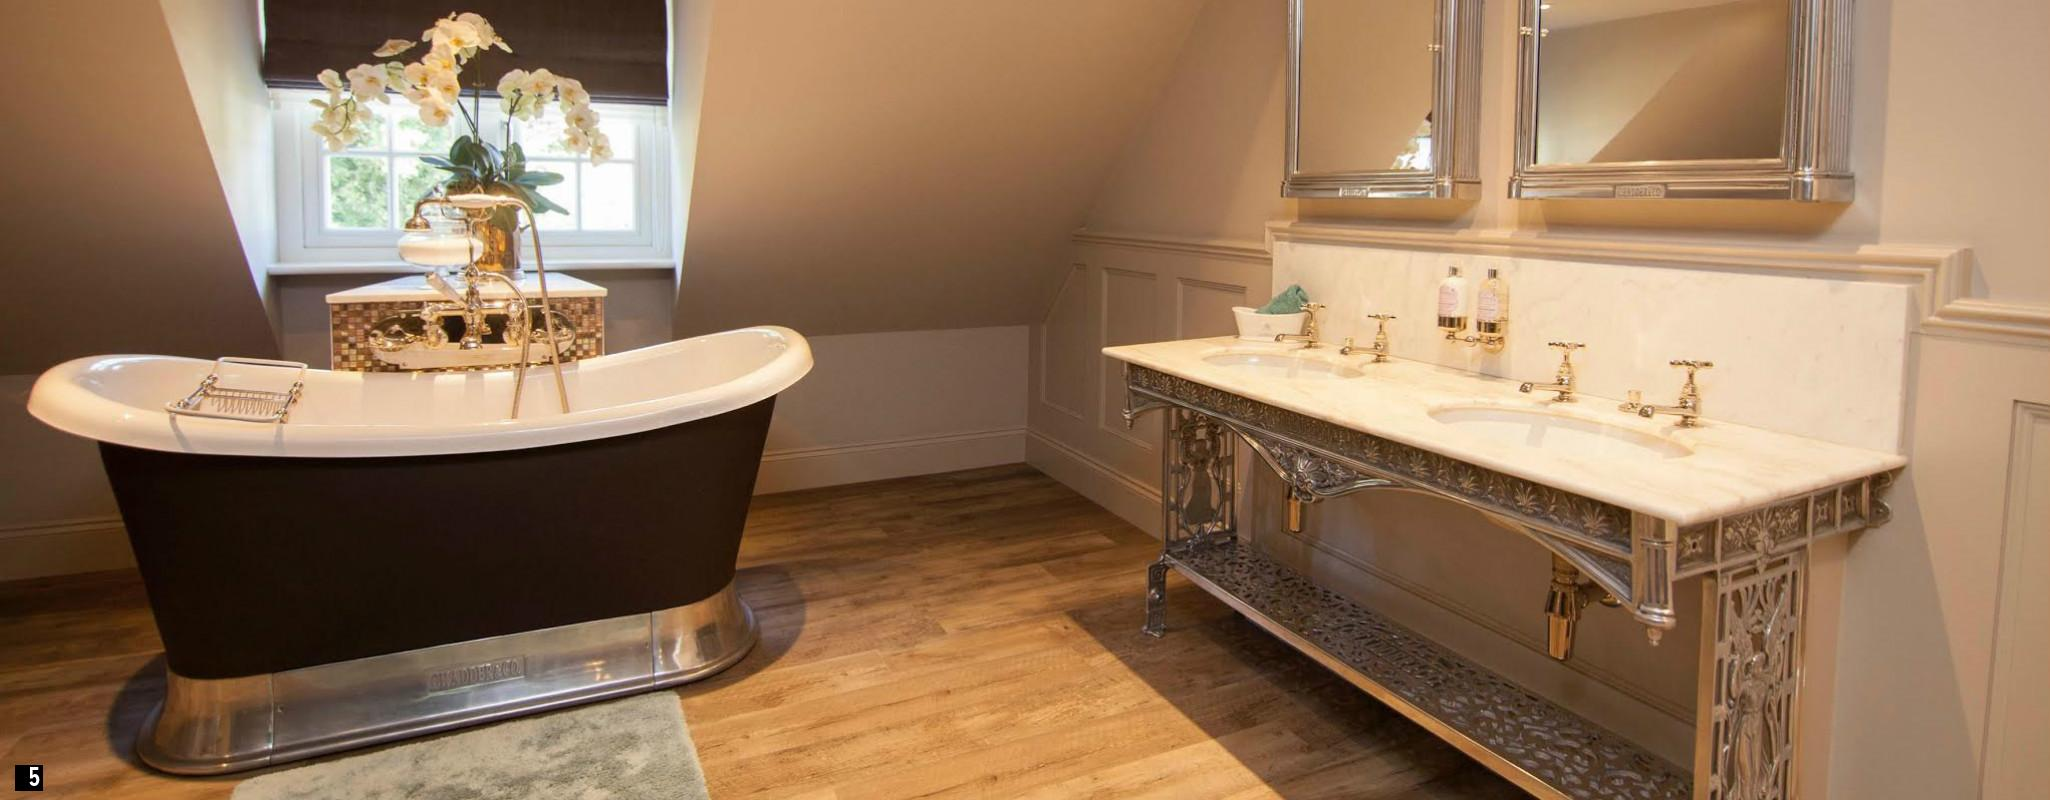 Bespoke Bathrooms , Bespoke Toilets , Bespoke Cisterns Bespoke Taps , Bespoke Copper Baths